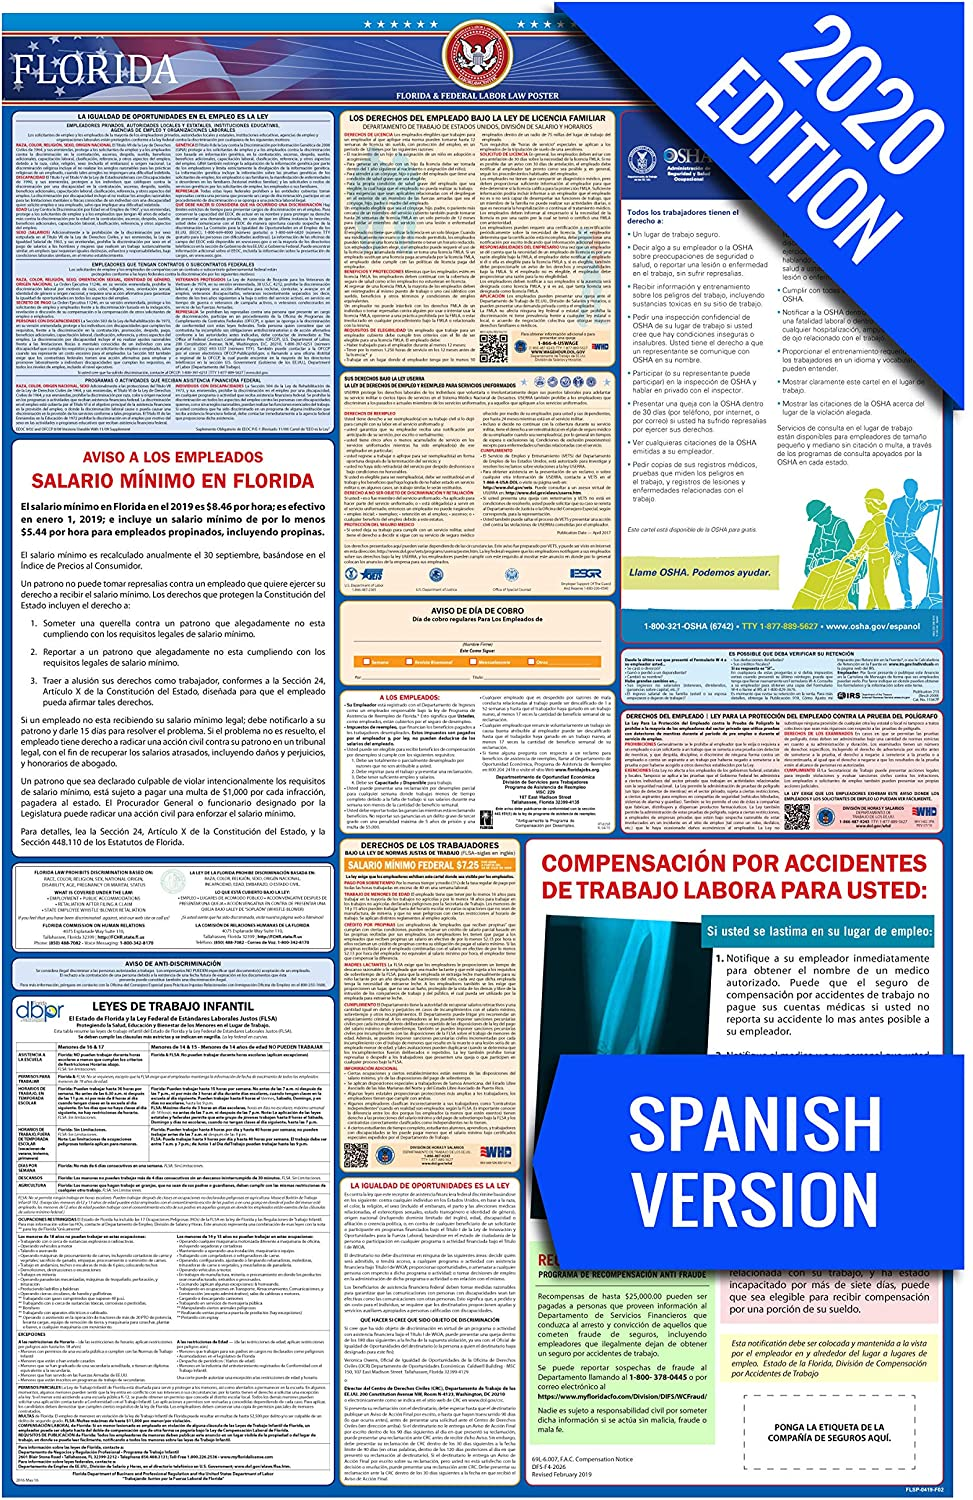 FL Labor Law Poster, 2020 Edition - State, Federal and OSHA Compliant Laminated Poster (Florida, Spanish)